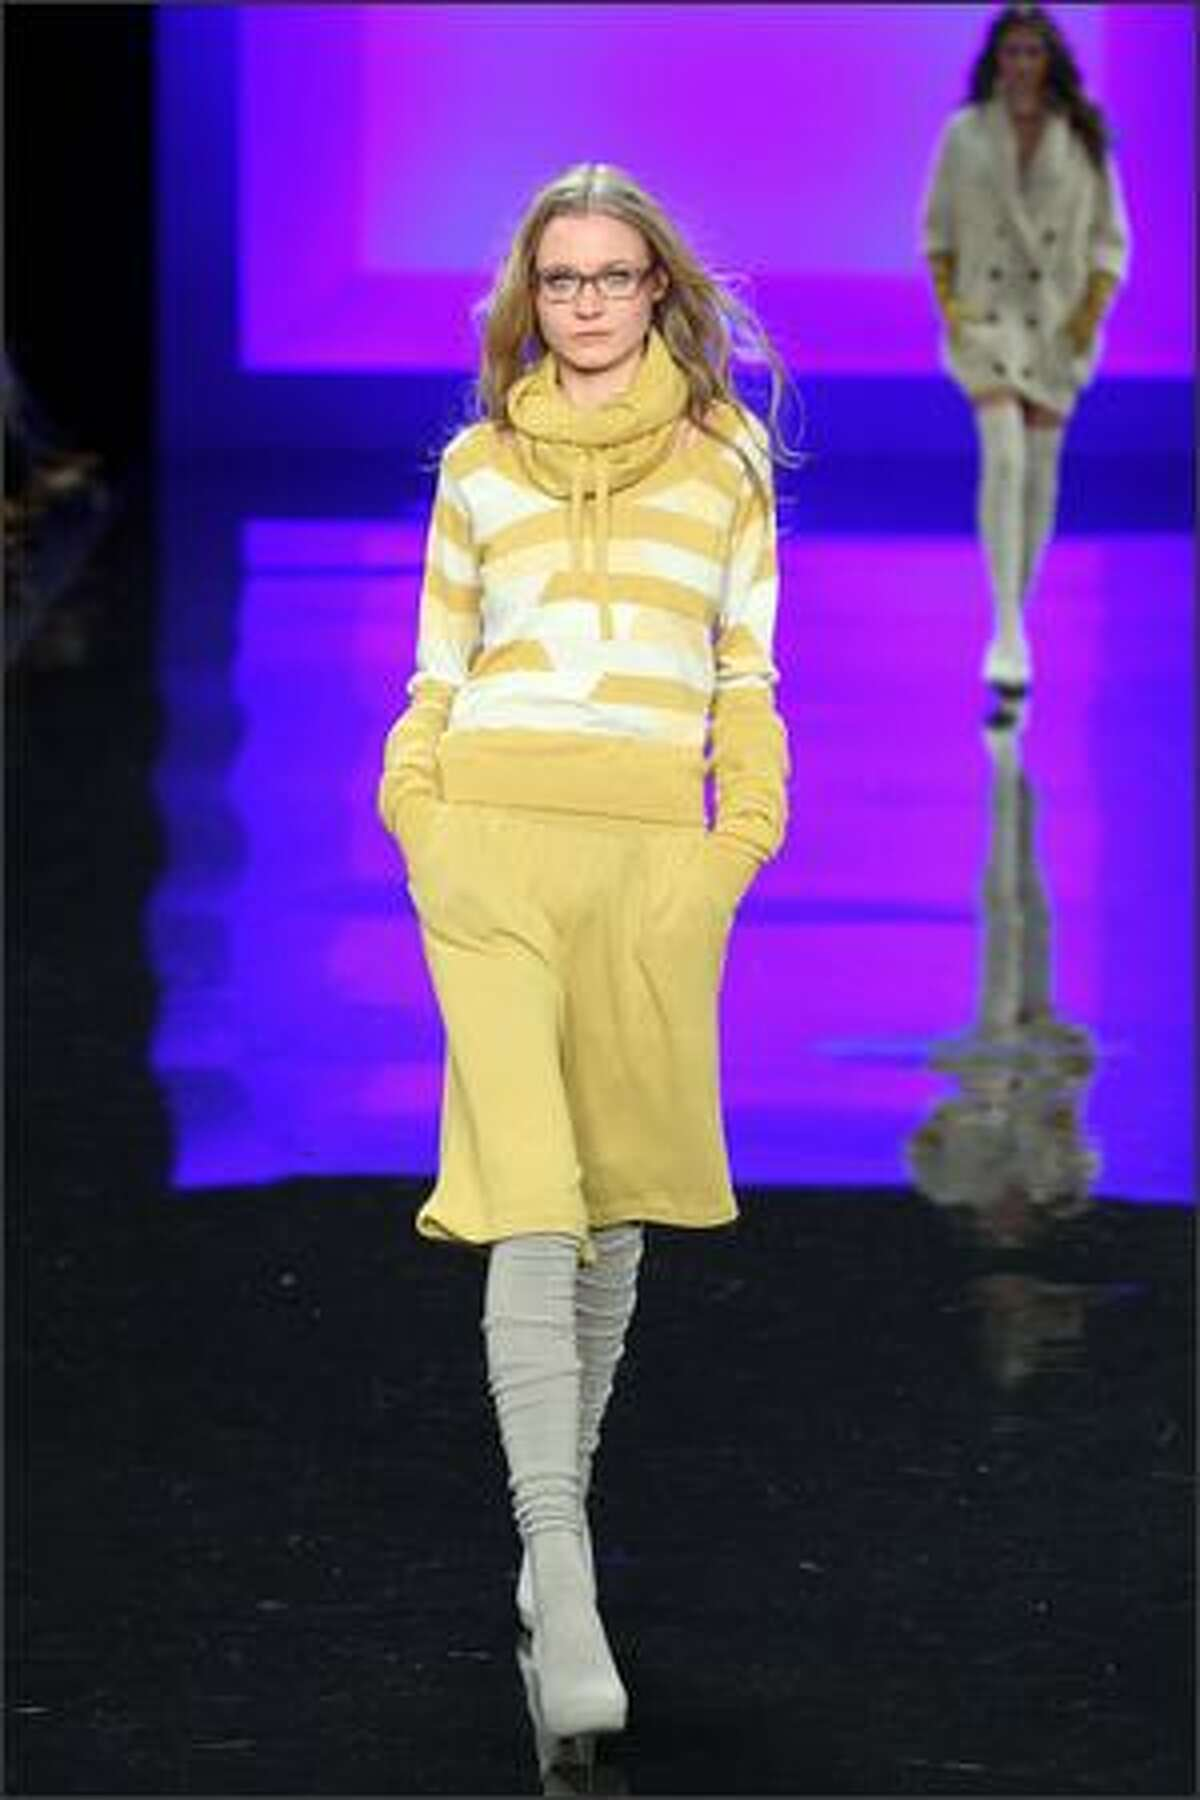 A model walks the runway at the Lacoste Fall 2009 fashion show during Mercedes-Benz Fashion Week in the Tent at New York's Bryant Park on Saturday, Feb. 14, 2009.